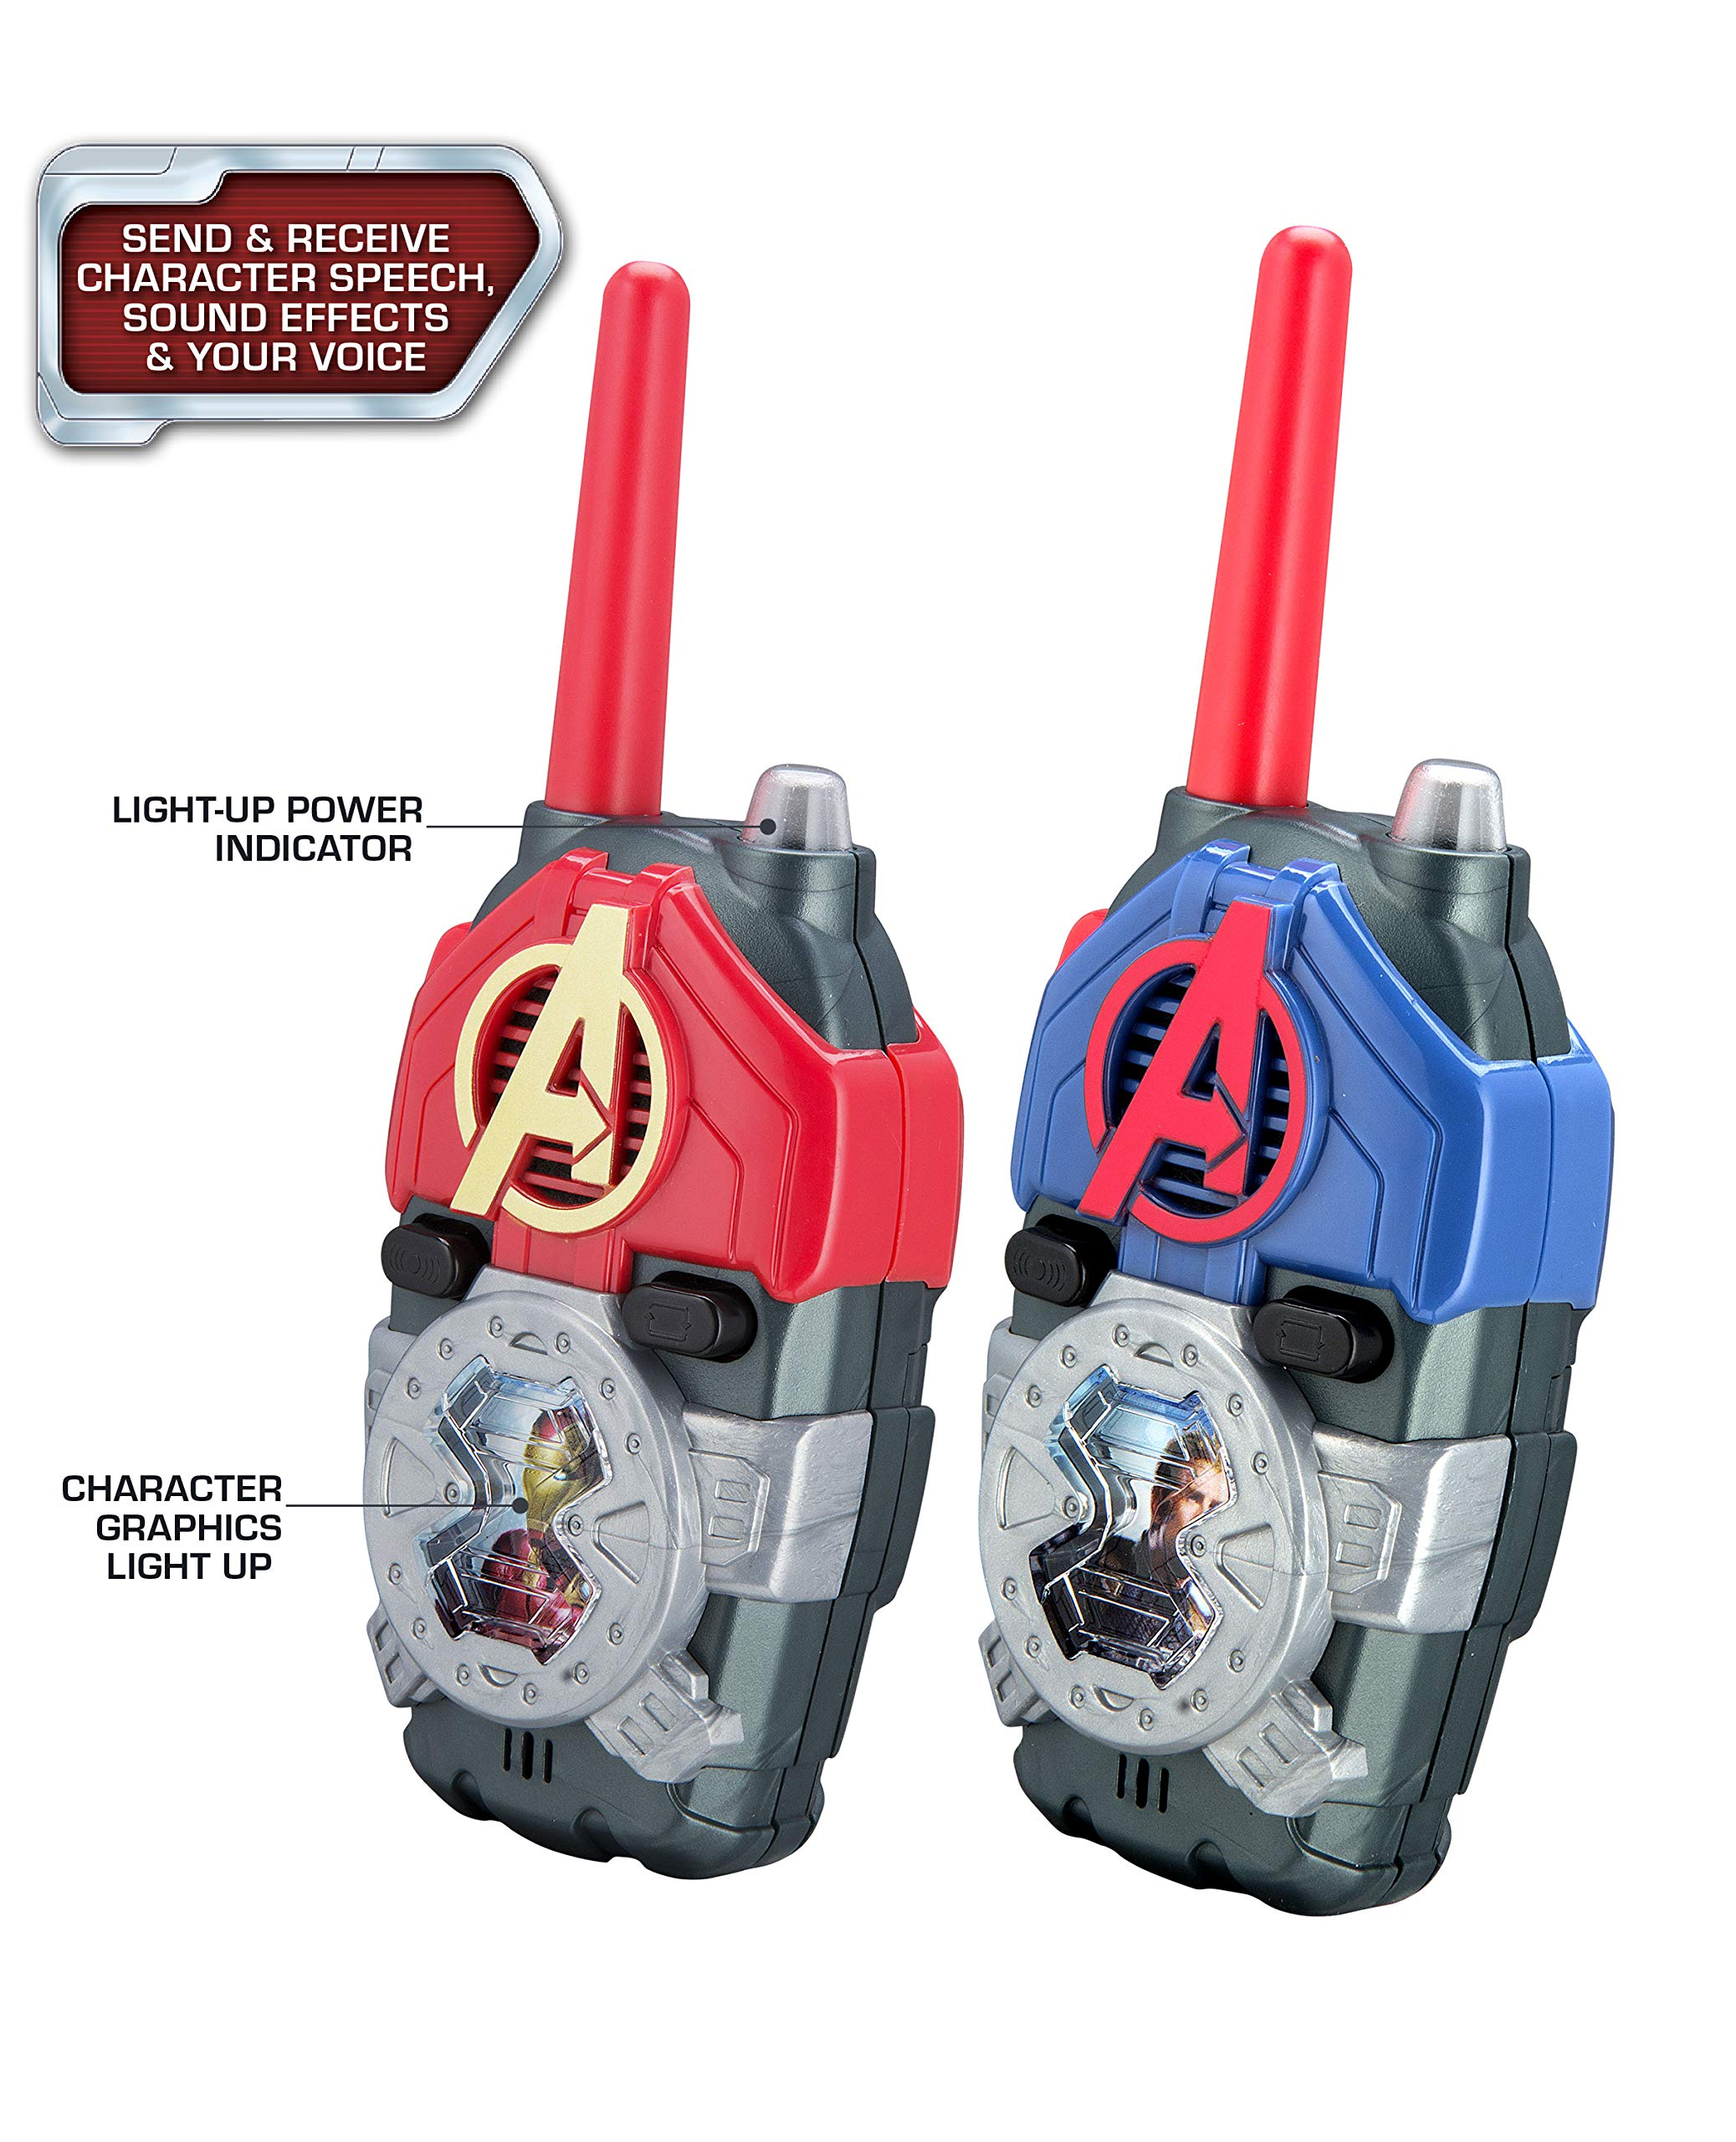 eKids Avengers Endgame FRS Walkie Talkies with Lights & Sounds Kid Friendly Easy to Use by eKids (Image #3)